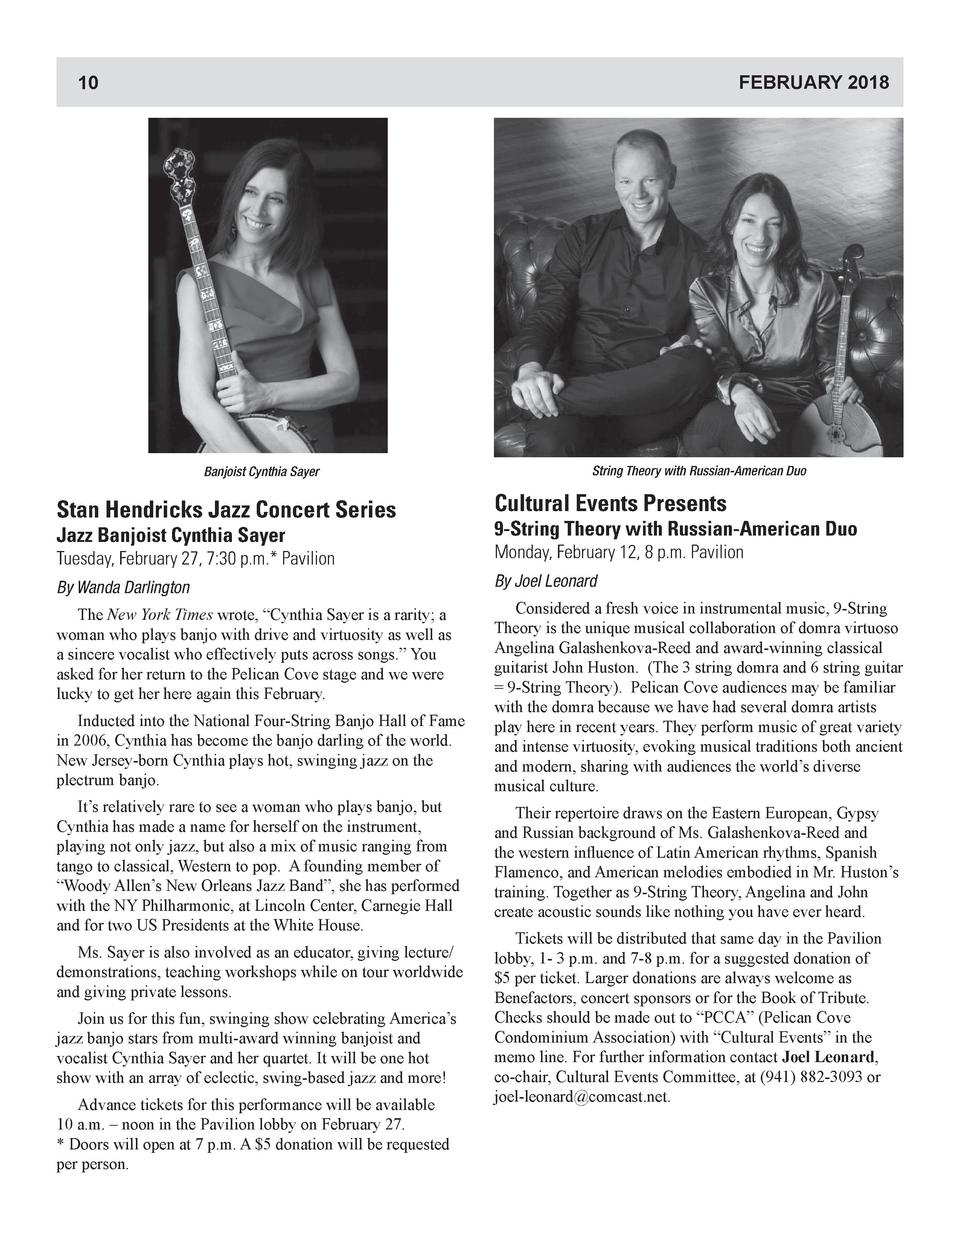 FEBRUARY 2018  10  Banjoist Cynthia Sayer  String Theory with Russian-American Duo  Stan Hendricks Jazz Concert Series  Cu...